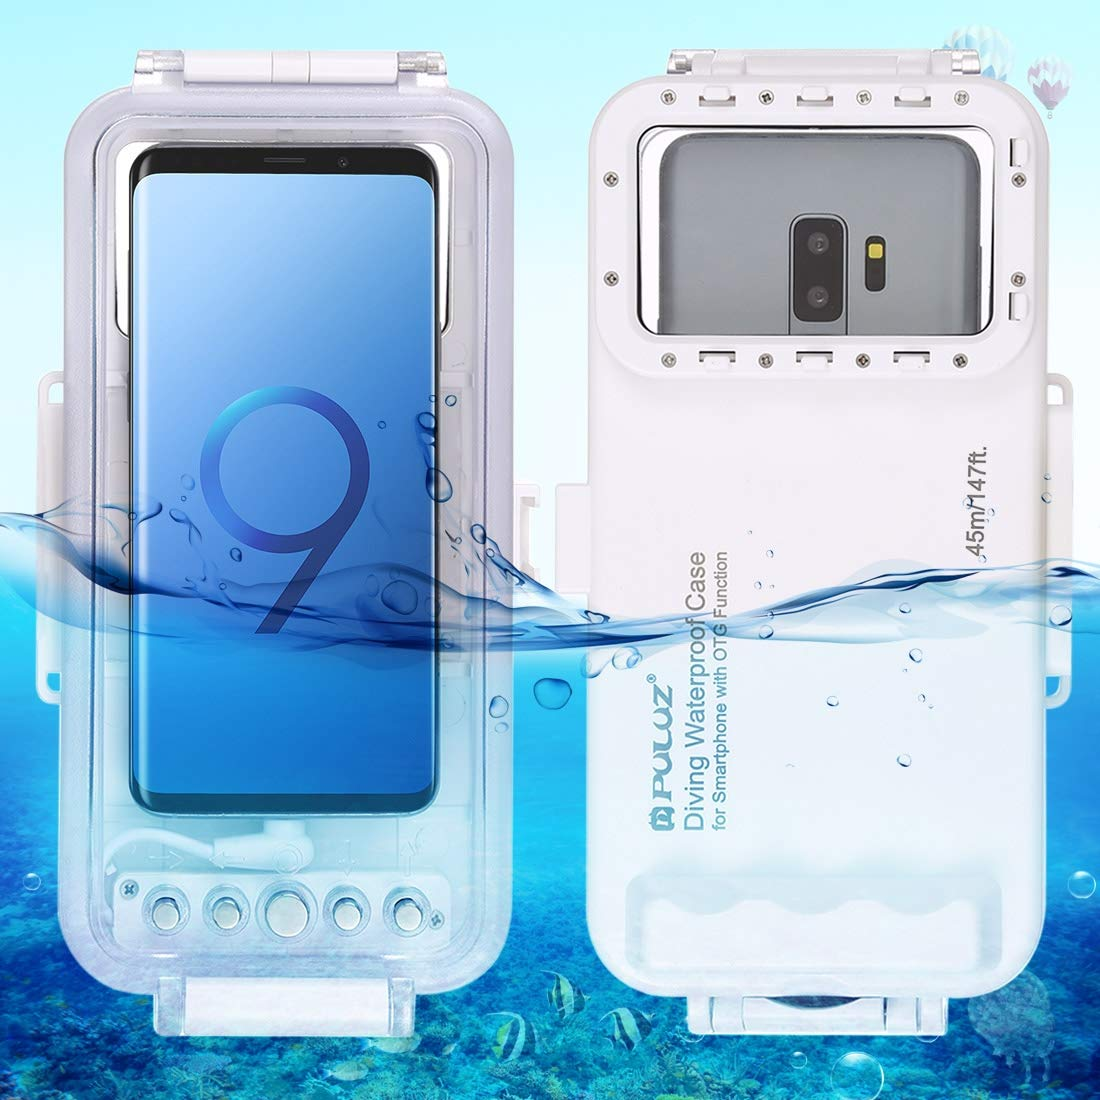 PULUZ Professional [45m/147ft] Diving Surfing Swimming Snorkeling Photo Video Waterproof Protective Case Underwater Housing for Galaxy, Huawei, Xiaomi and All Android OTG Smartphones with Type-C Port by PULUZ